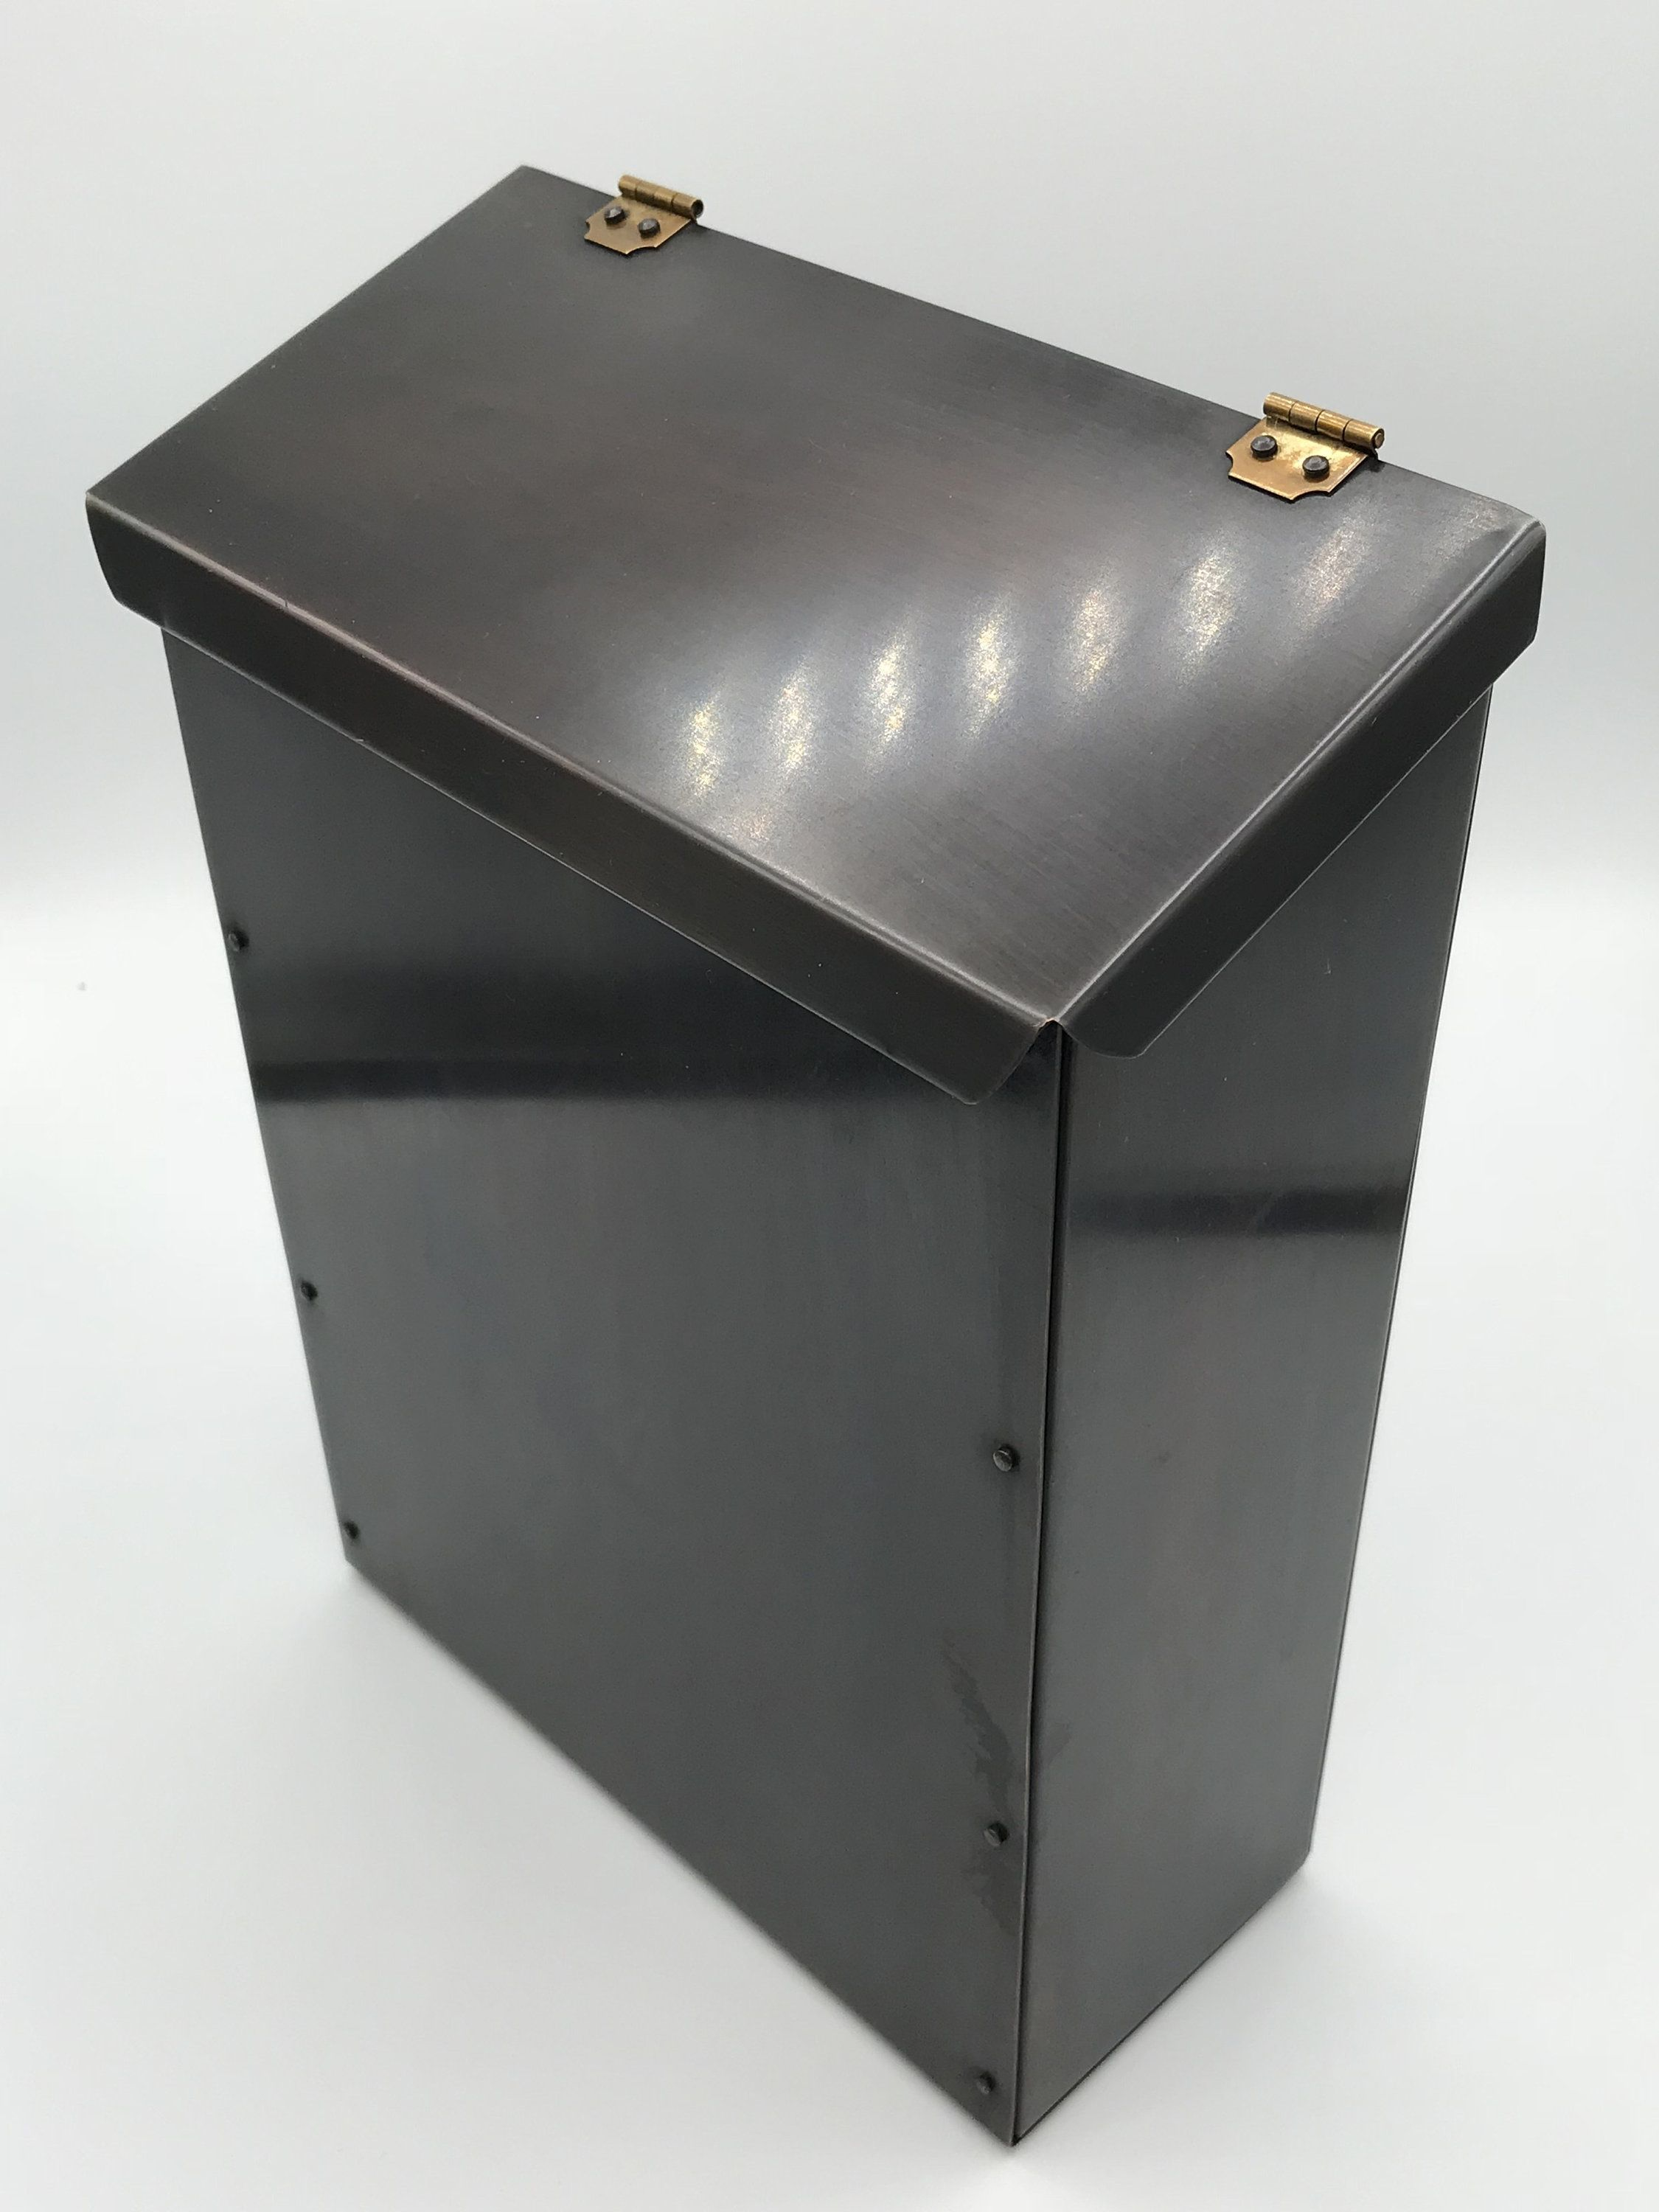 Wall Mount Mailbox Copper Mailbox Wall Mount Outdoor Metal Mailbox For House Copper Mail Box Mailbox For Wall 7th Anniversary Gift Metal Mailbox Mounted Mailbox 7th Anniversary Gifts